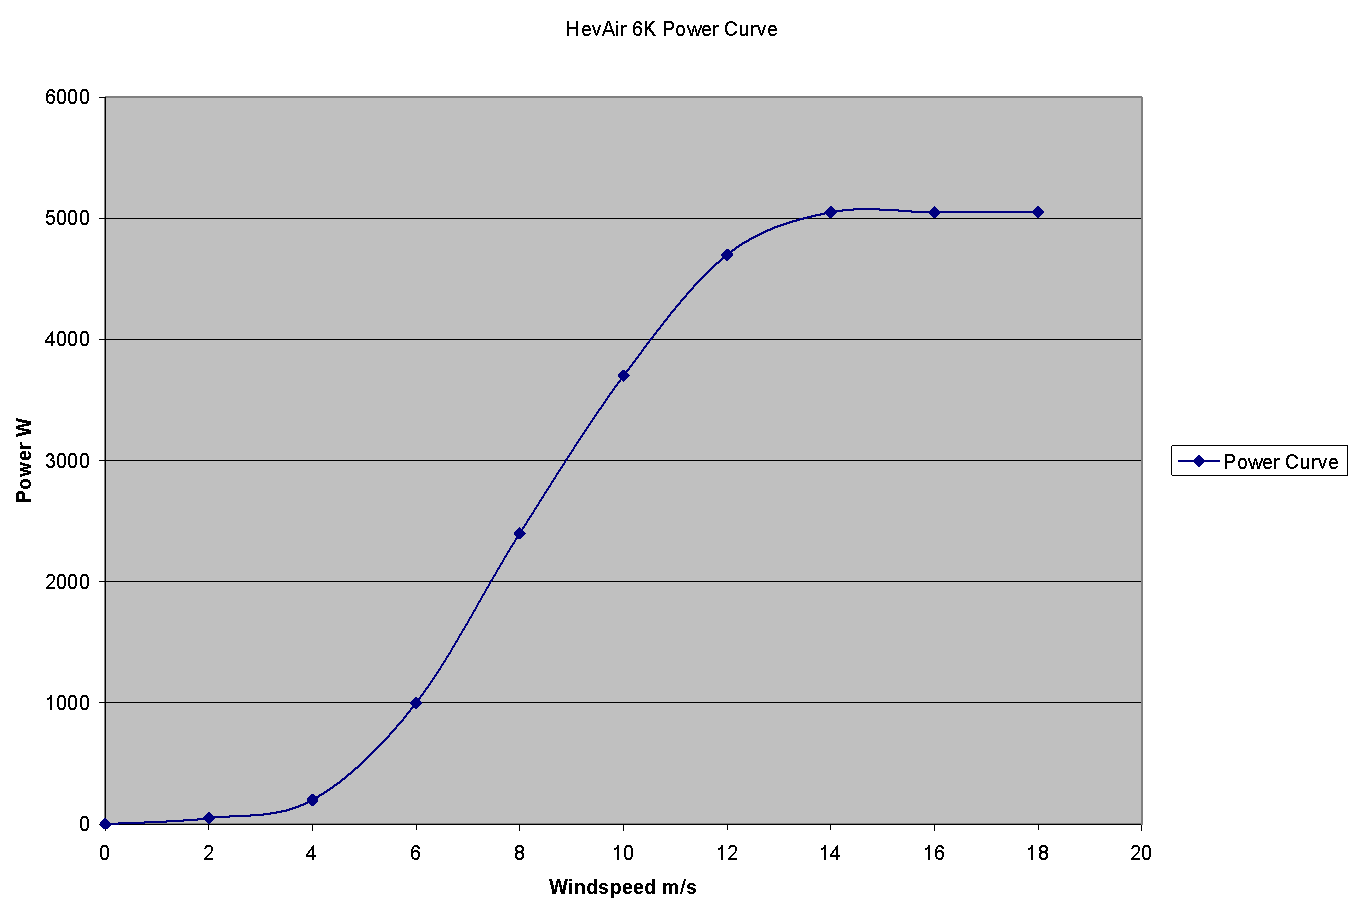 HevAir 6k Power Curve